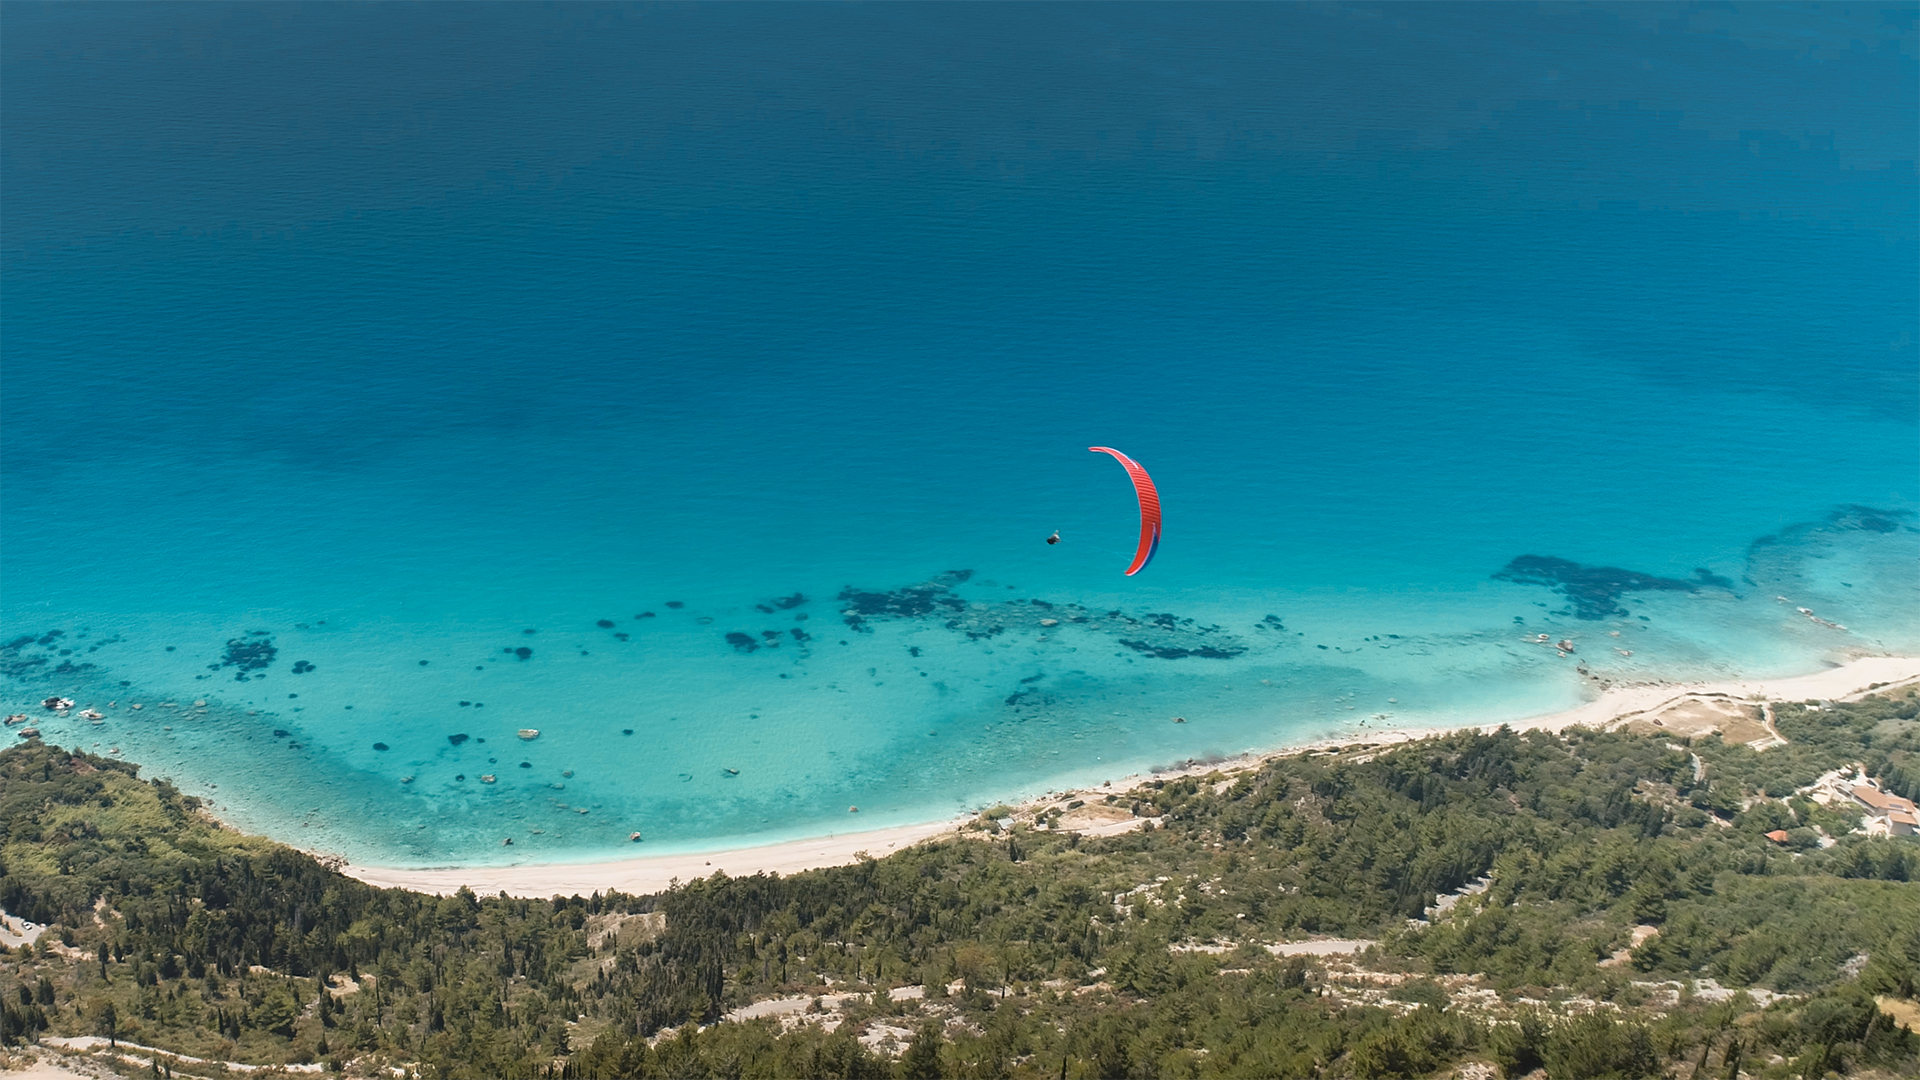 As you laze on the beach, paragliders will occasionally drift overhead